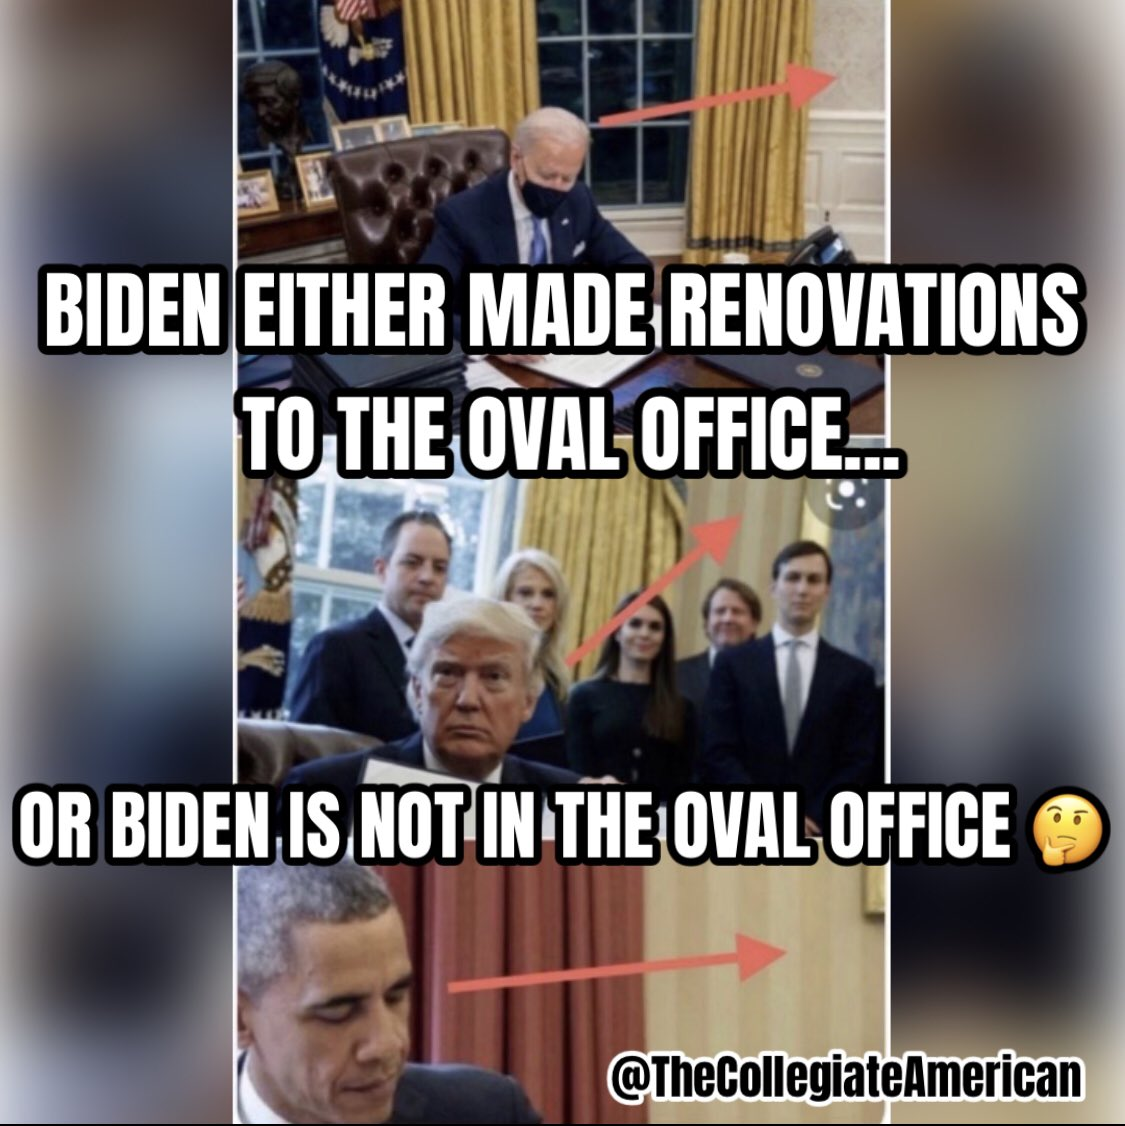 Do you seriously think Biden is actually the legitimate President? You seriously think the military doesn't know exactly what's going on after 4 years of predicting a stolen election? I sure don't think so. Think bigger. #ExposeTheDeepState #DrainTheSwamp #FakePresident #MAGA